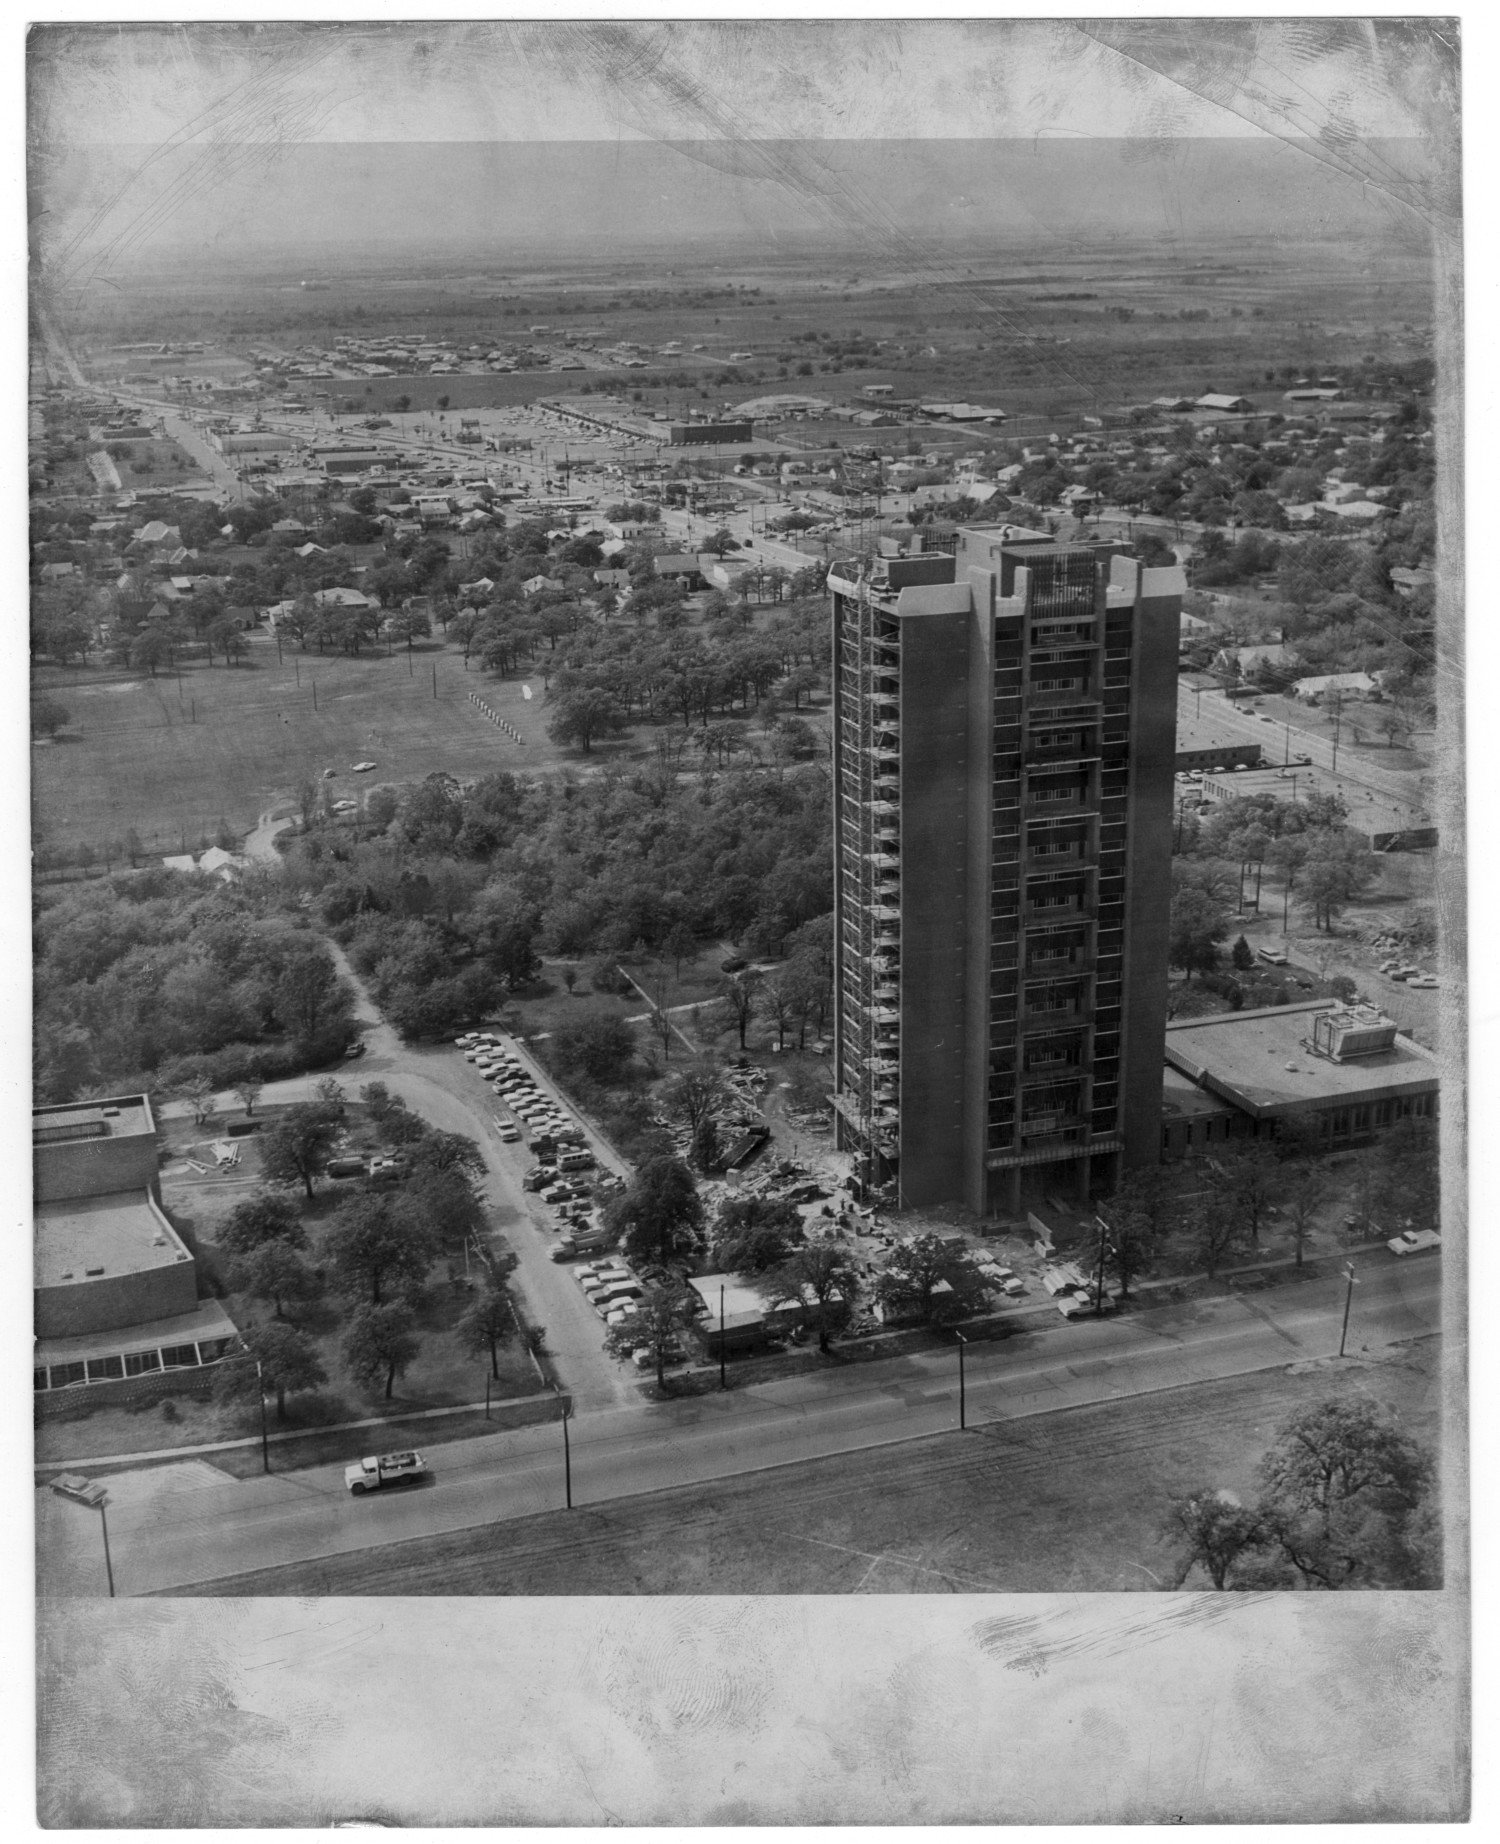 Stark Hall under construction (exact date unknown). Courtesy of University of North Texas Libraries and Denton Public Library.